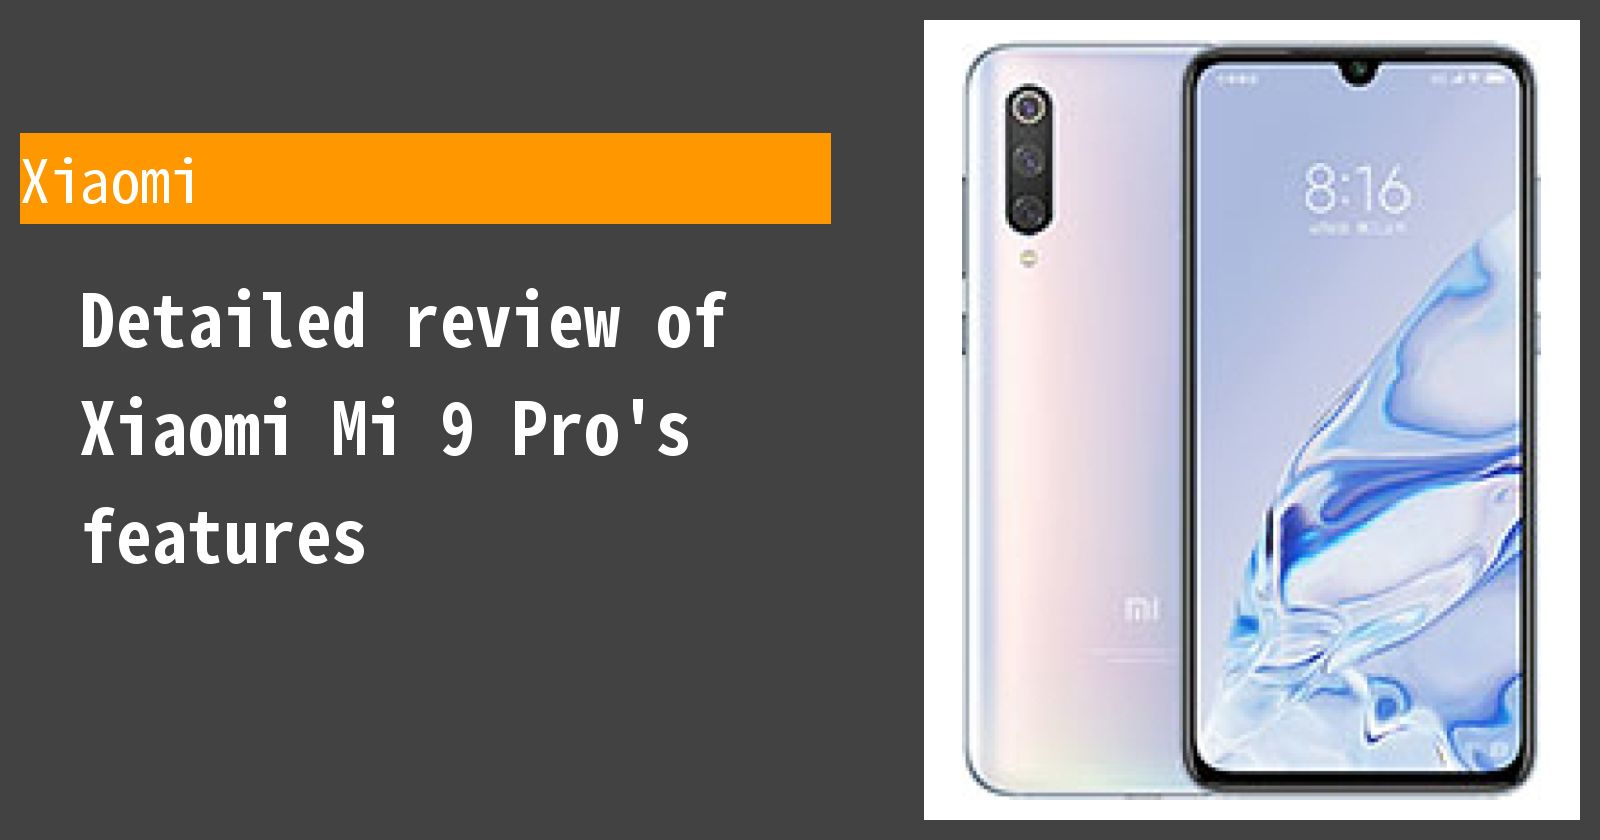 Detailed review of Xiaomi Mi 9 Pro's features